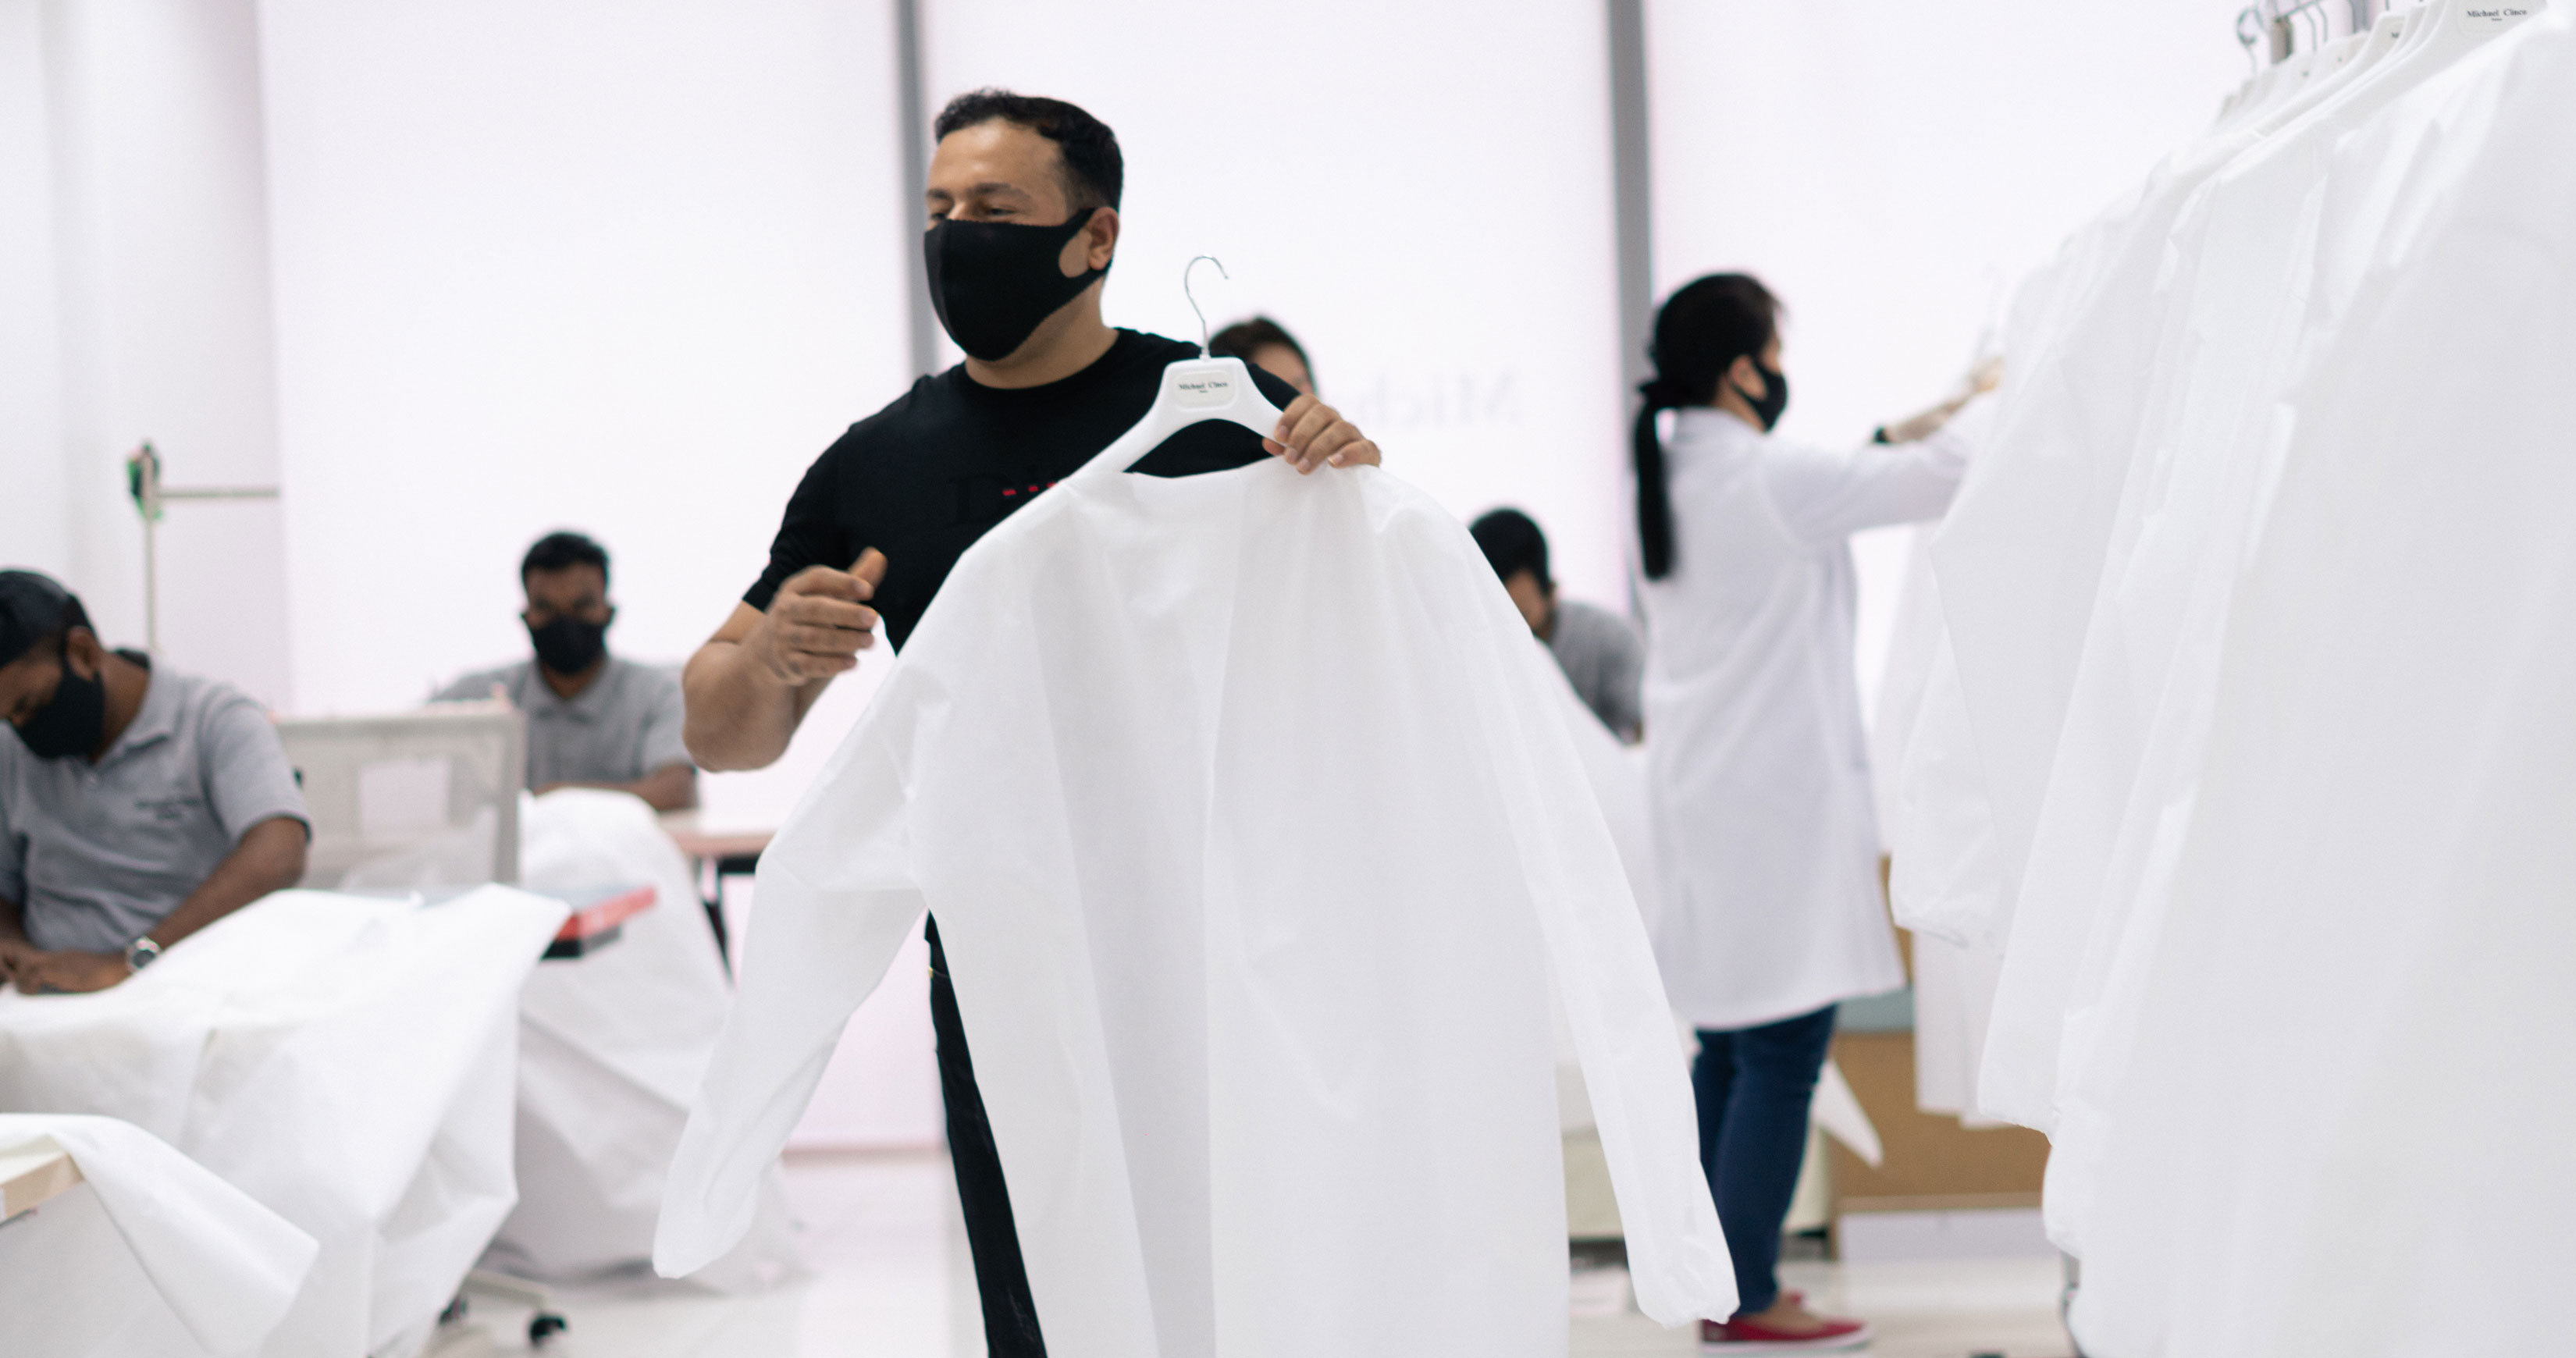 Dubai Fashion Designers Create Gowns And Masks For Frontline Medical Staff